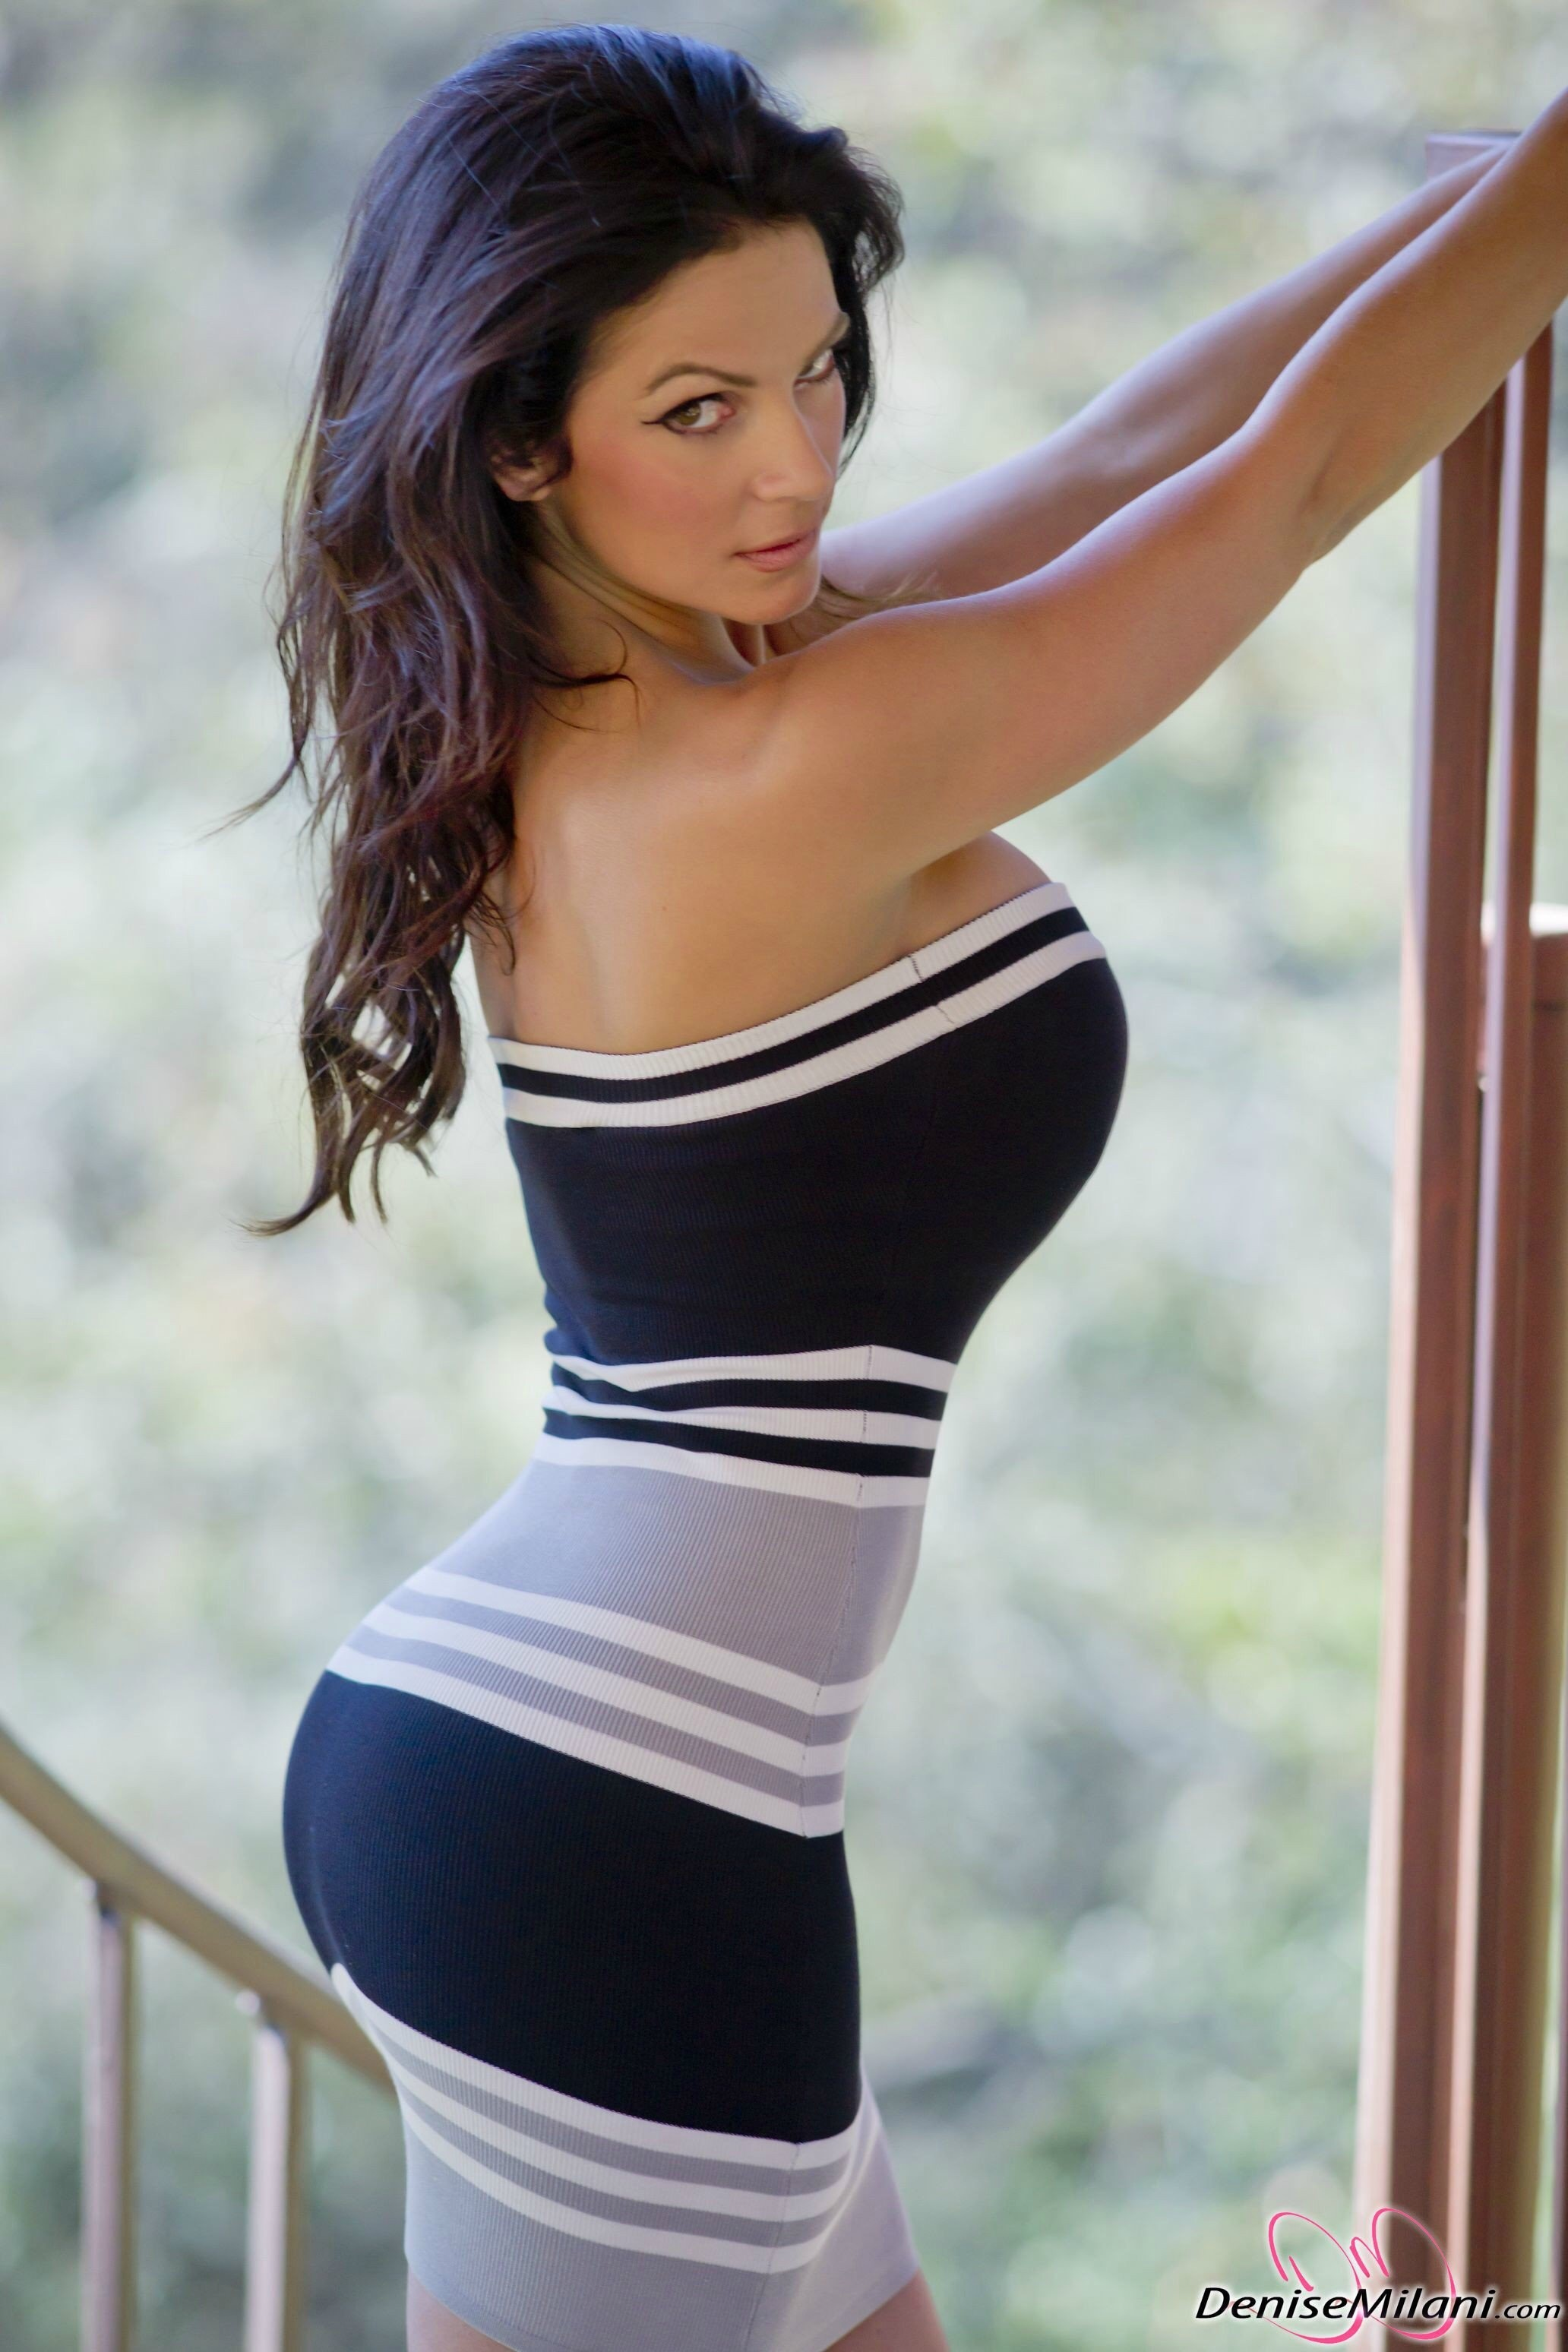 Denise Milani picture 81